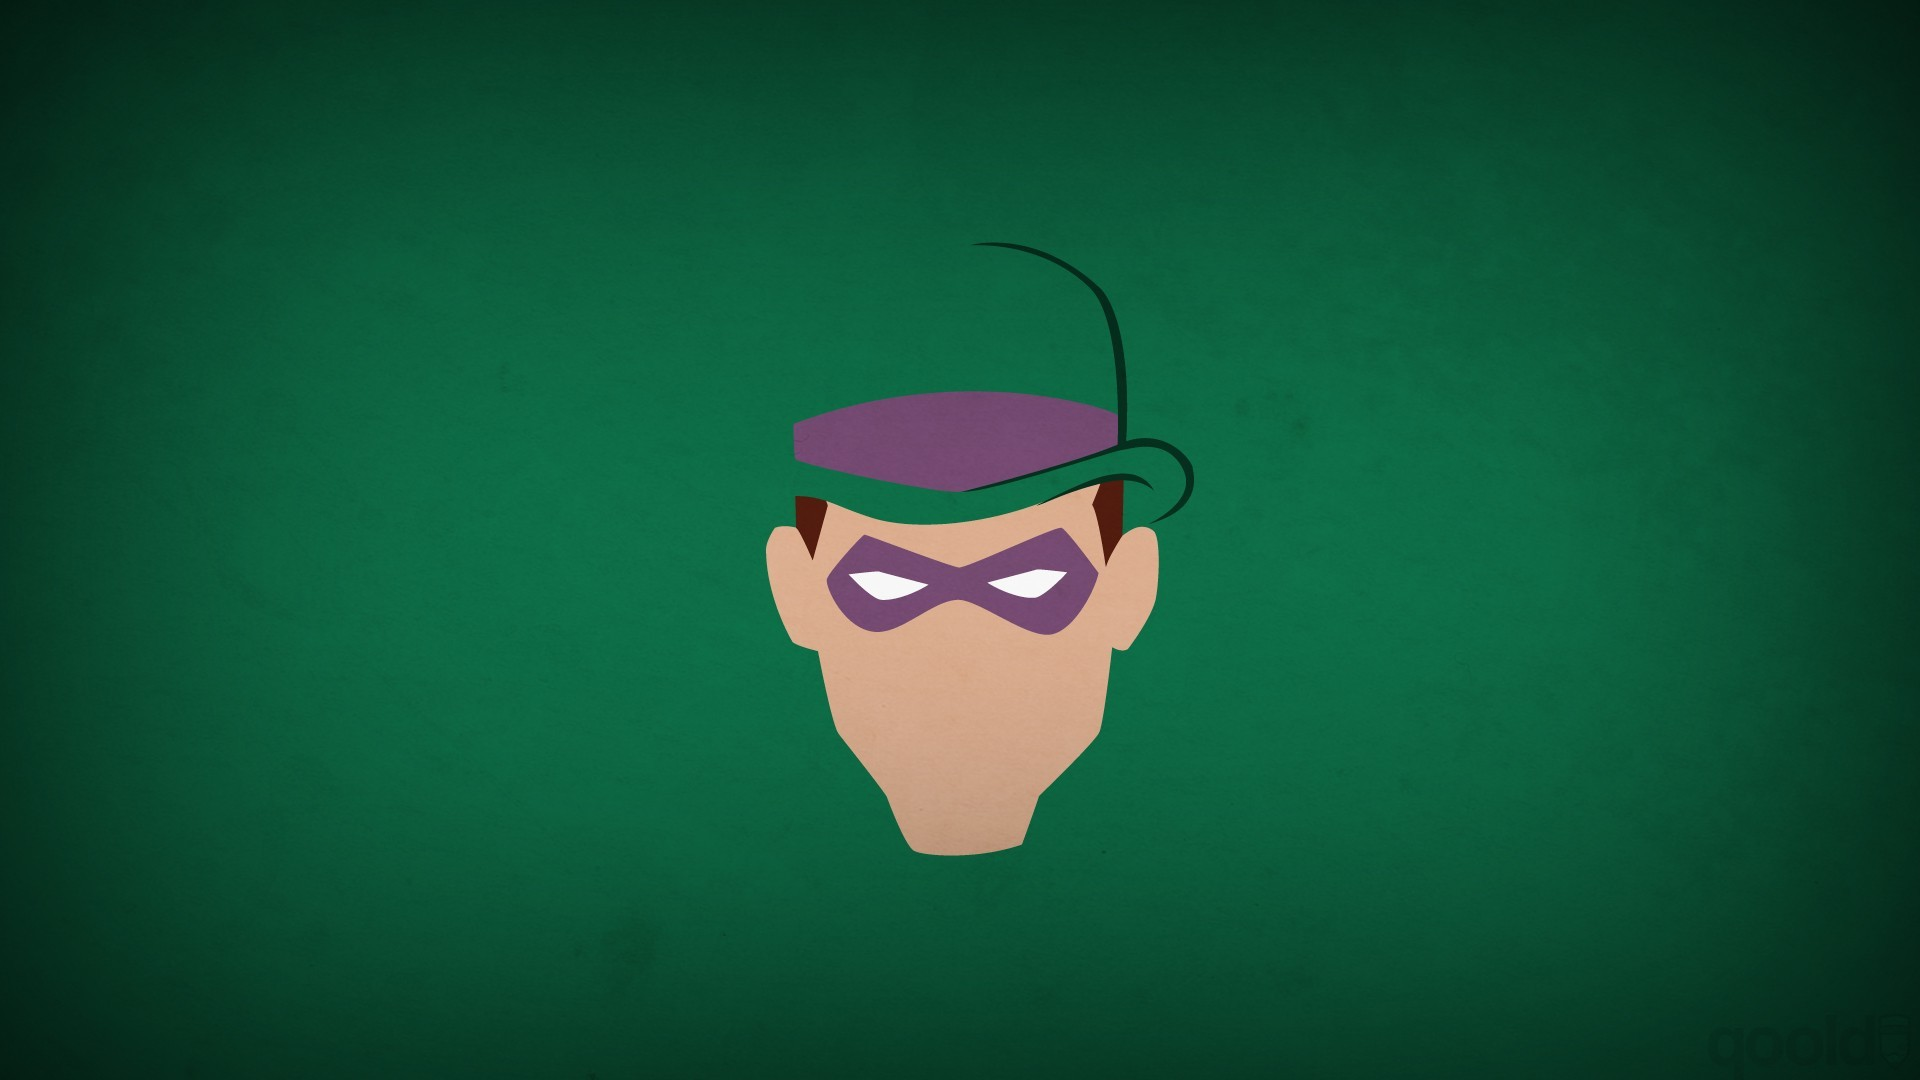 DC Comics, Heroes, The Riddler, Blo0p, Green Background Wallpapers HD /  Desktop and Mobile Backgrounds